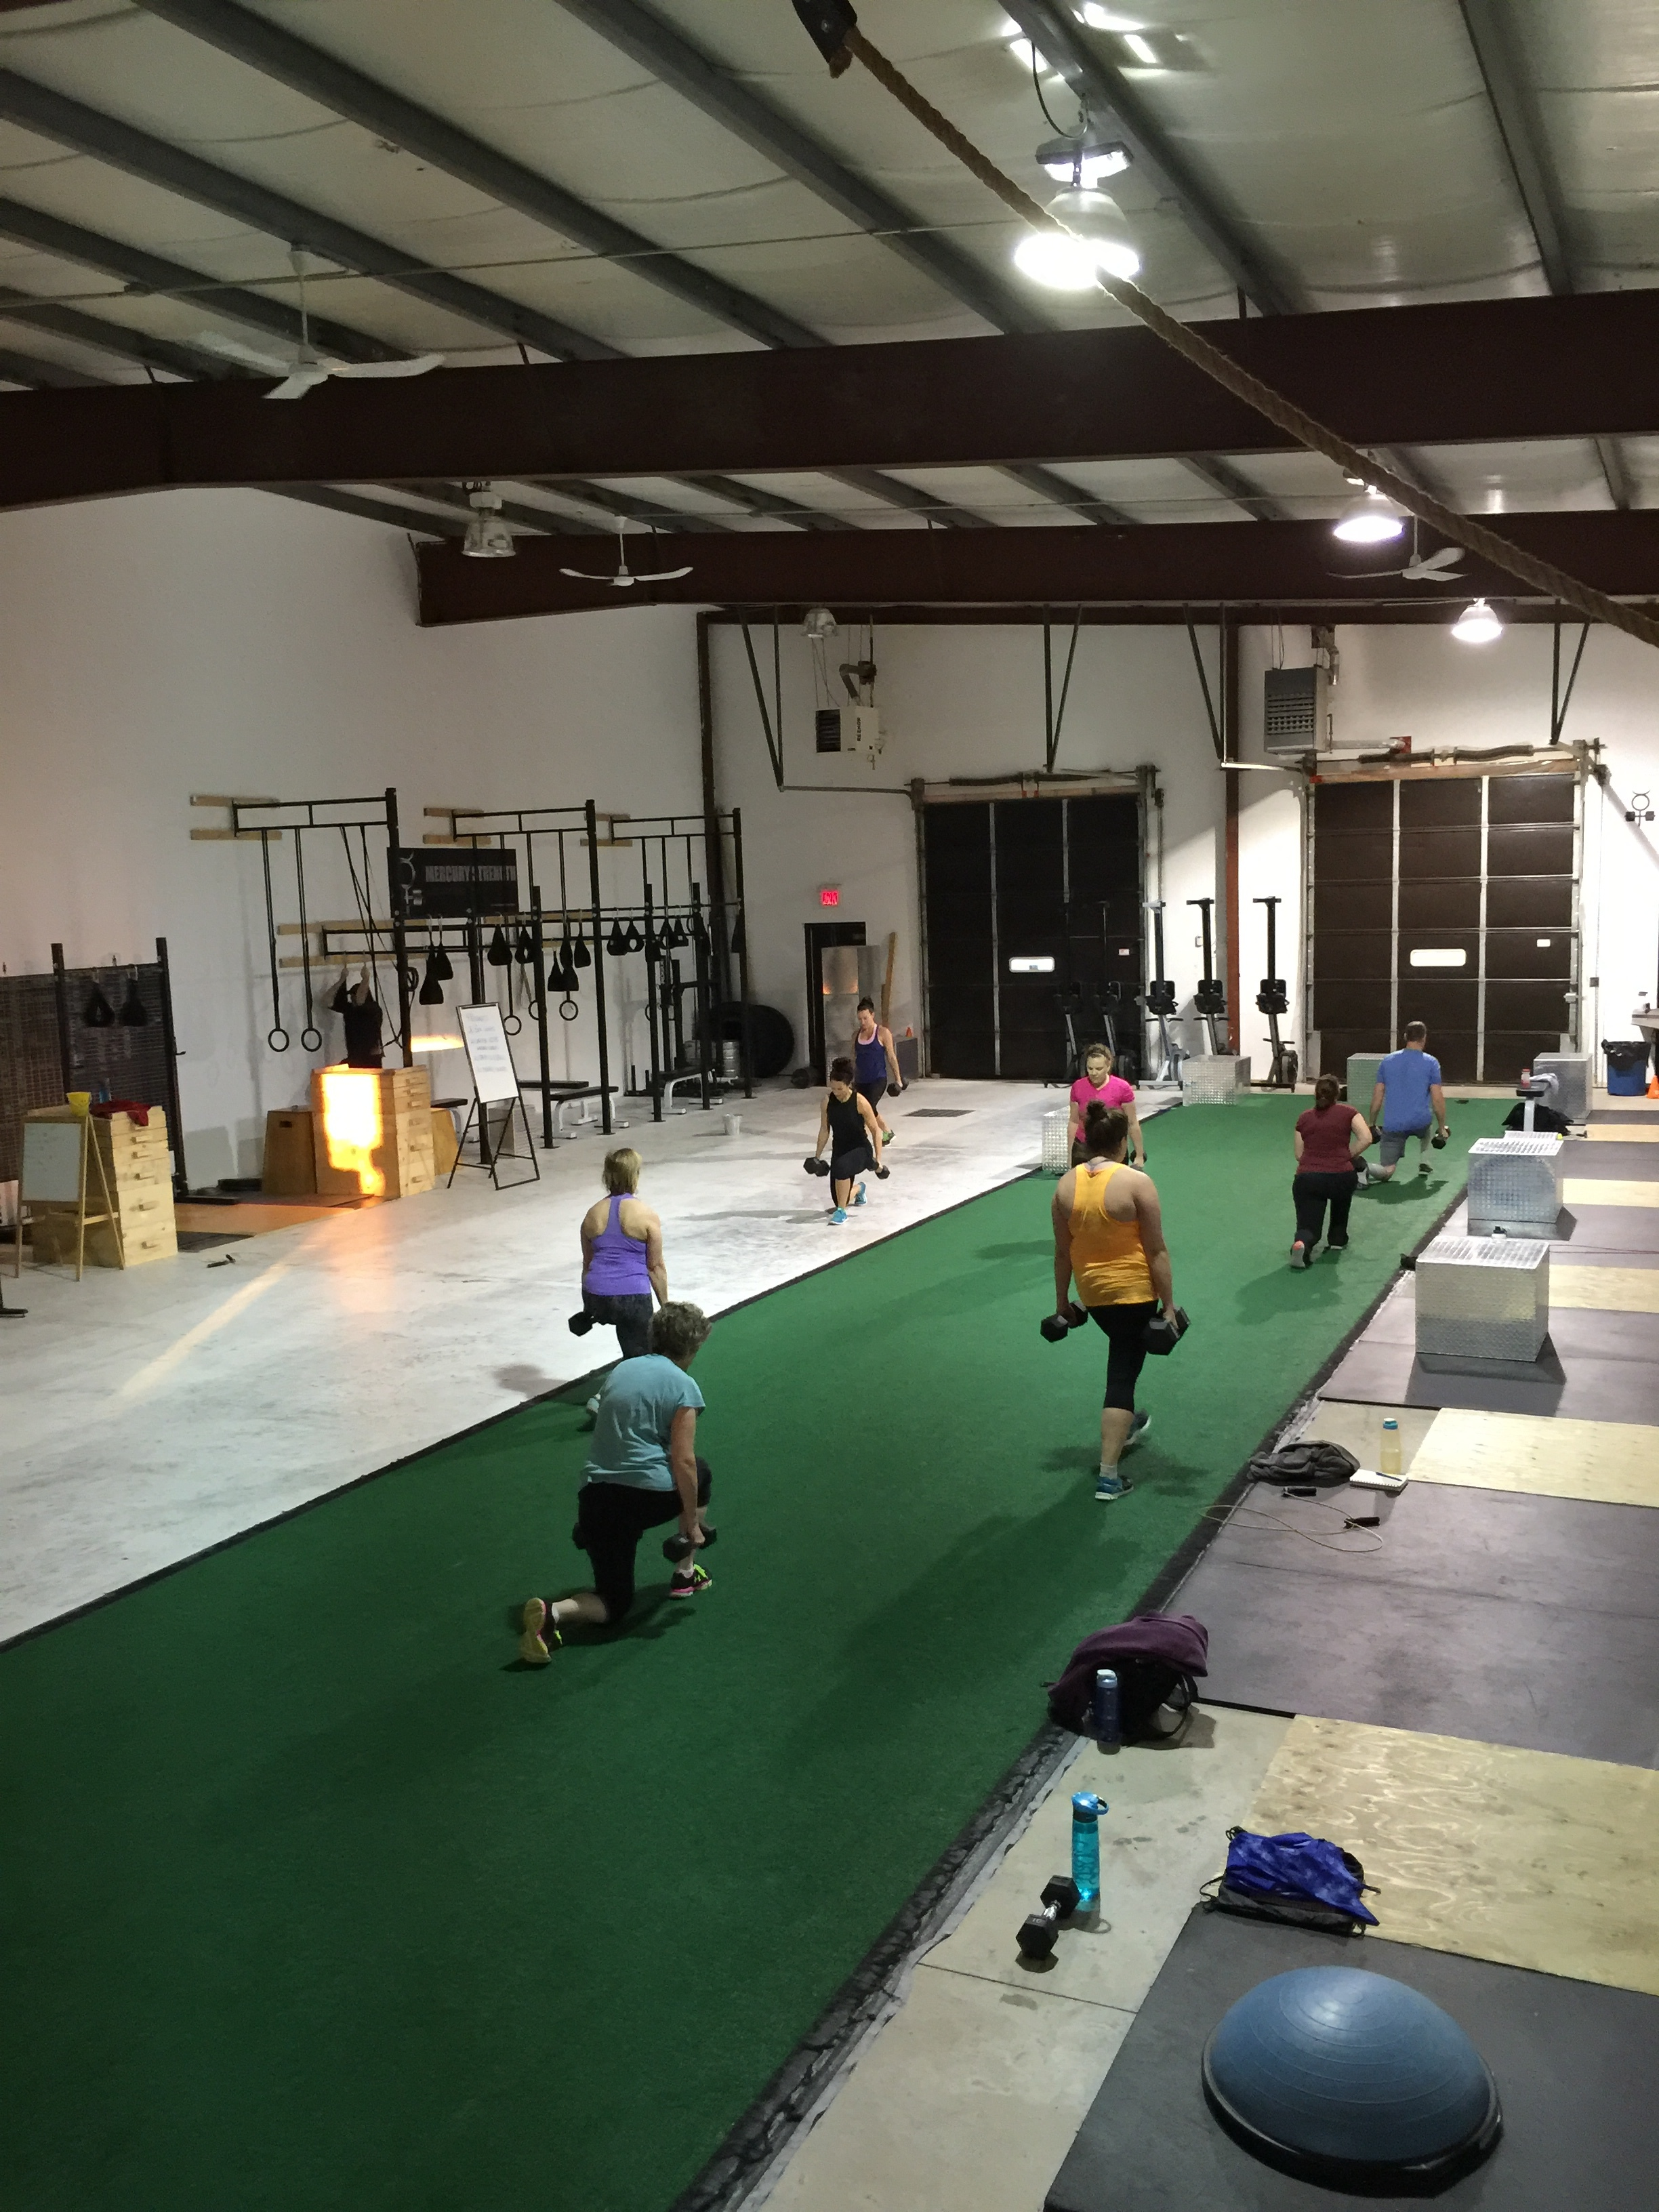 Uneven walking lunges being performed. Such a great exercise. Focuses on grip strength, balance, trunk stabilization, glute and quad development, and mental toughness.